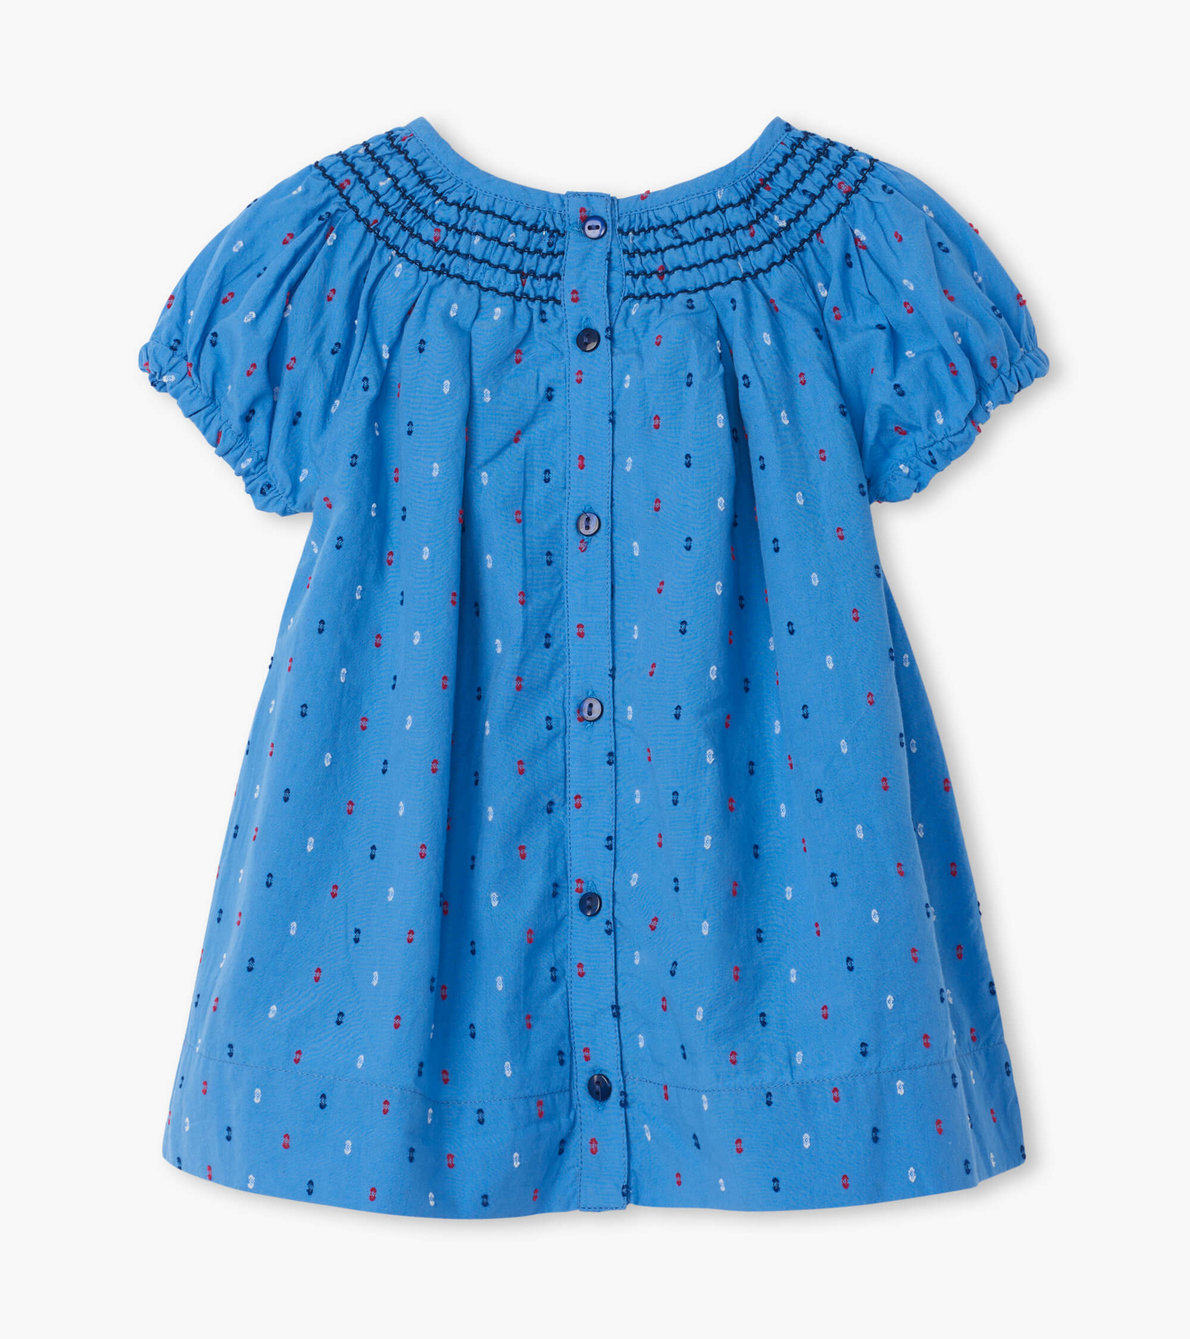 View larger image of Nautical Swiss Dots Baby Smocked Dress